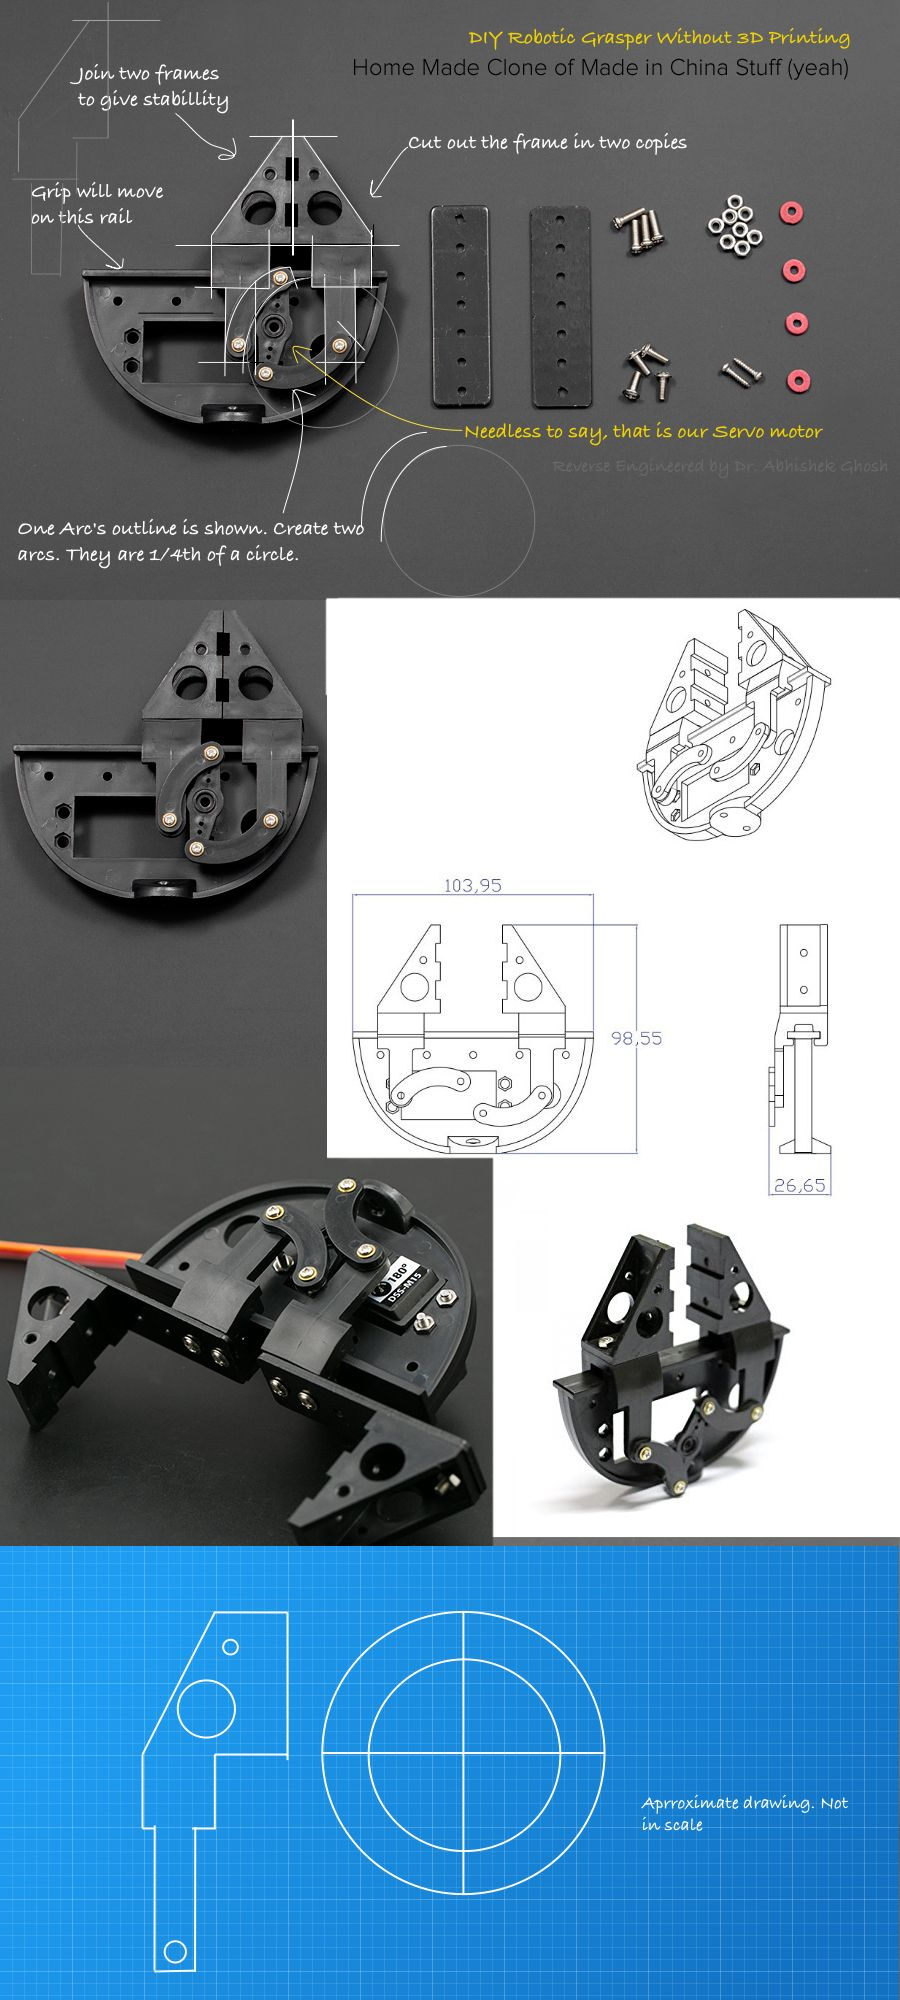 Diy Robotic Grasper For Servo Motor Arduino Technology Makeblock Inventor Kit Add On Six Legged Robot We Were Talking About The Company Found Which Has Various Grips That One Such Grip Is Sold At 20 Dollar In Website